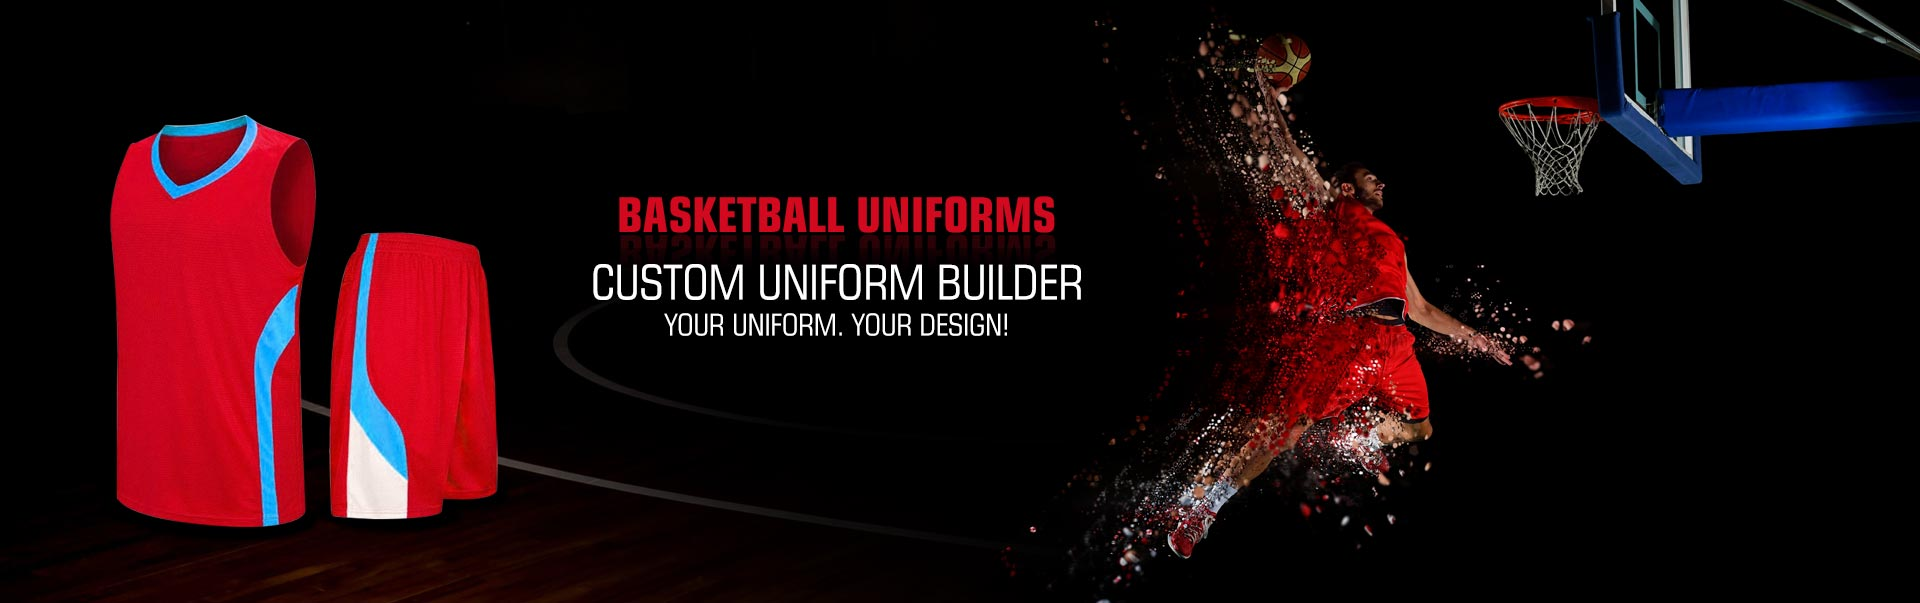 Basketball Uniforms Wholesaler, Suppliers in Armagh